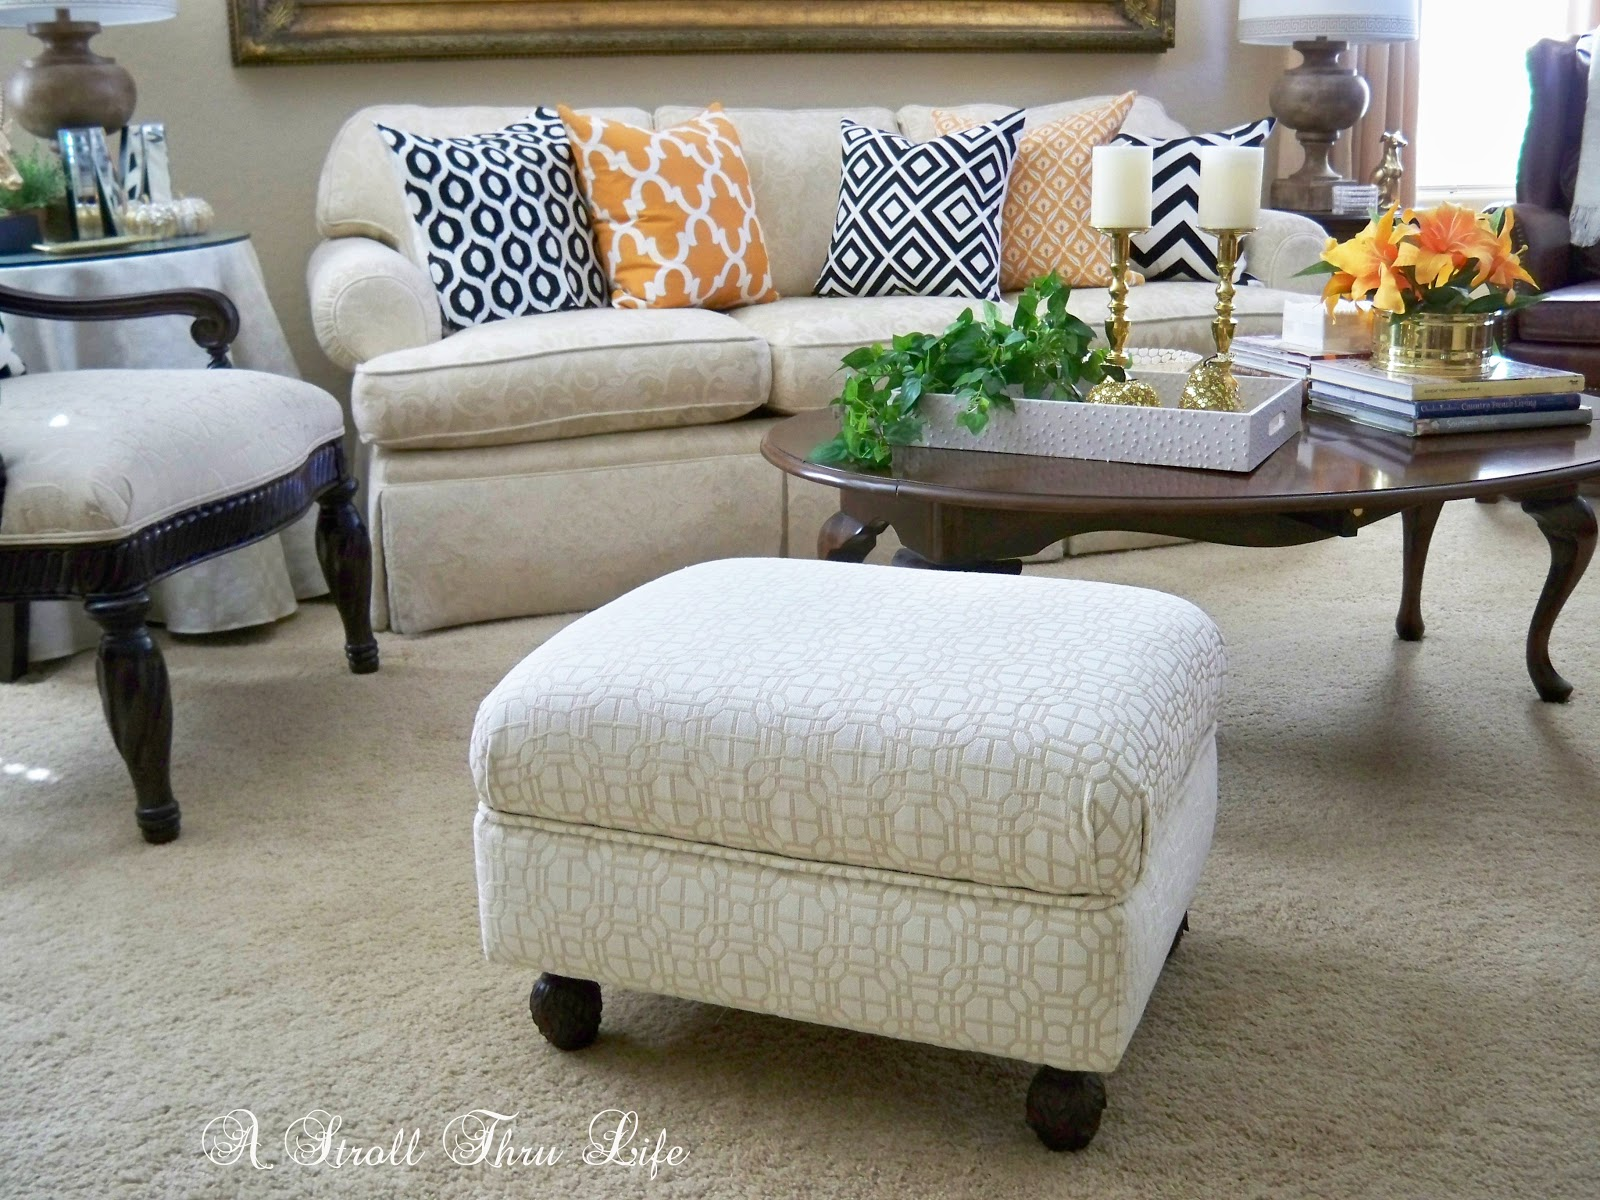 Ottoman Use a stroll thru life: how to make & upholster an ottoman